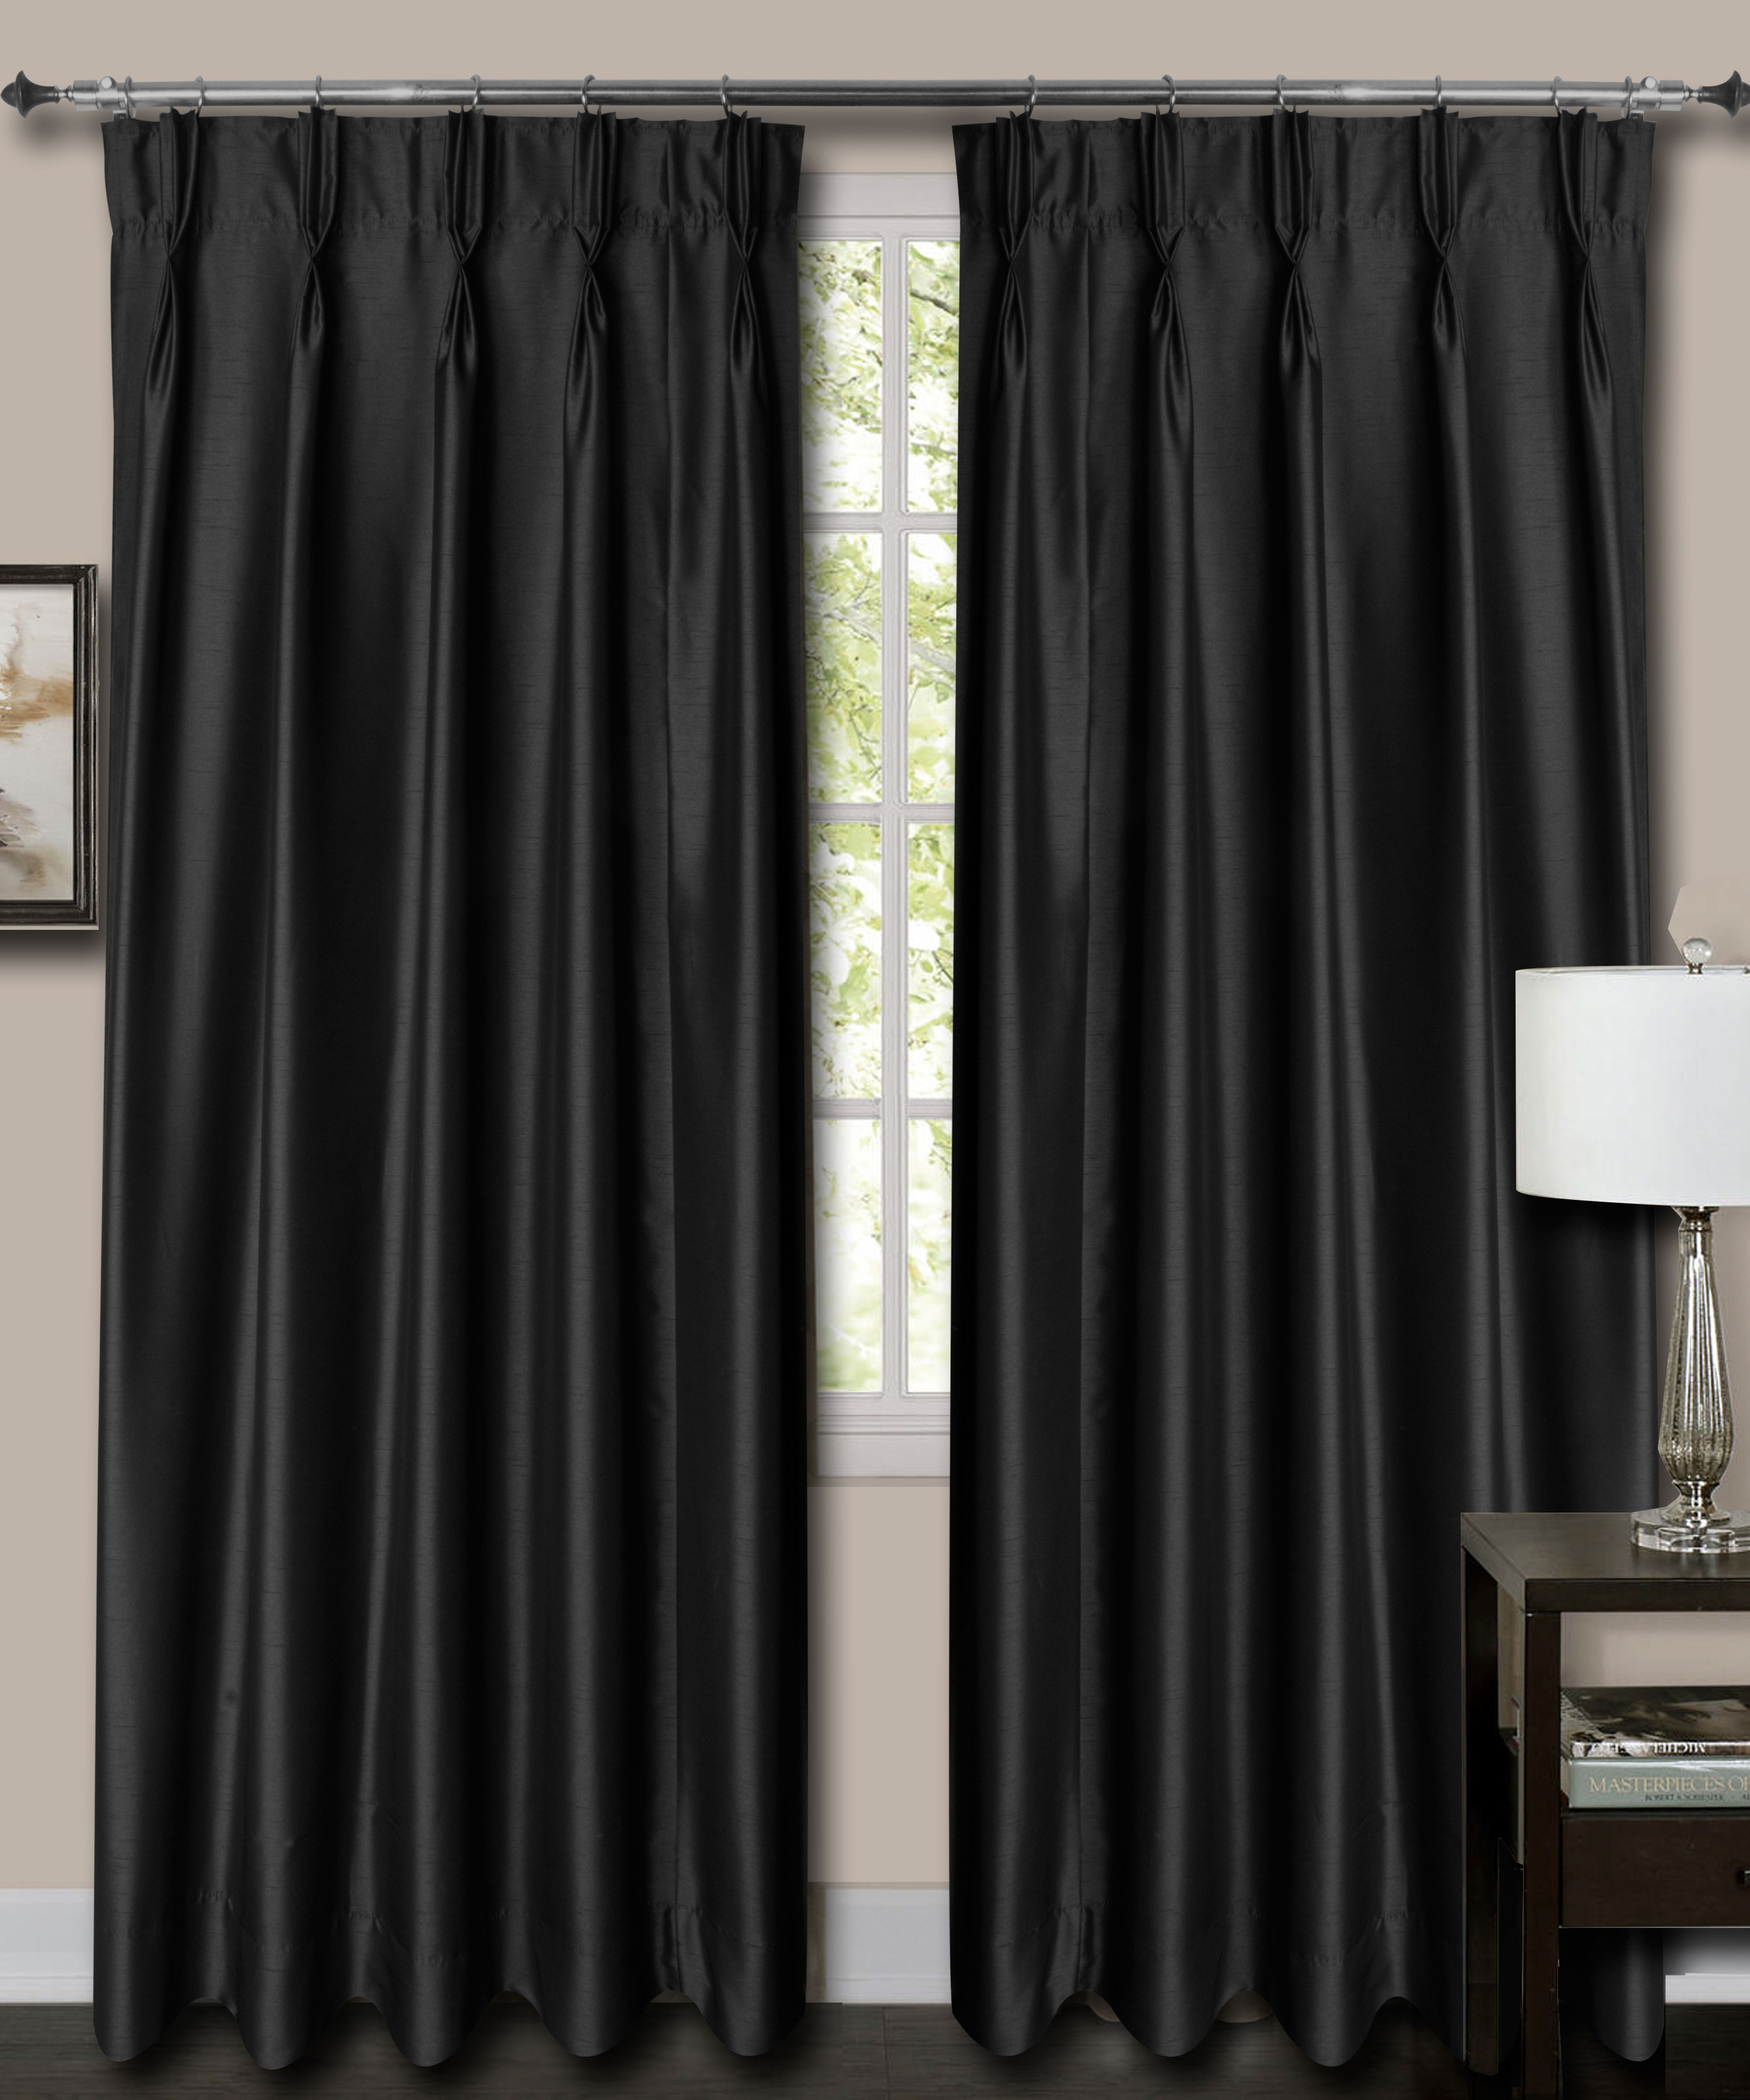 """French Pleat Top Black Faux Silk Dupioni Curtains. (52"""" Wide, 9 Feet Long, Blackout Lining)"""